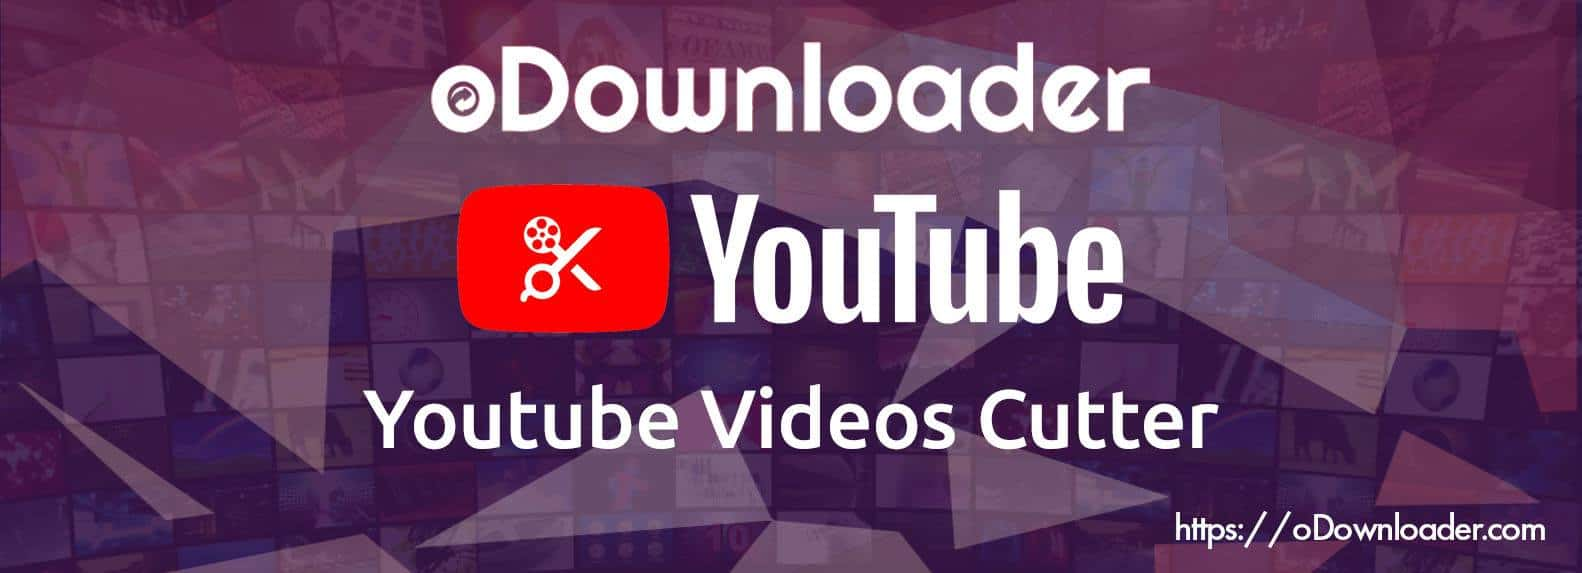 Youtube Videos Cutter Online